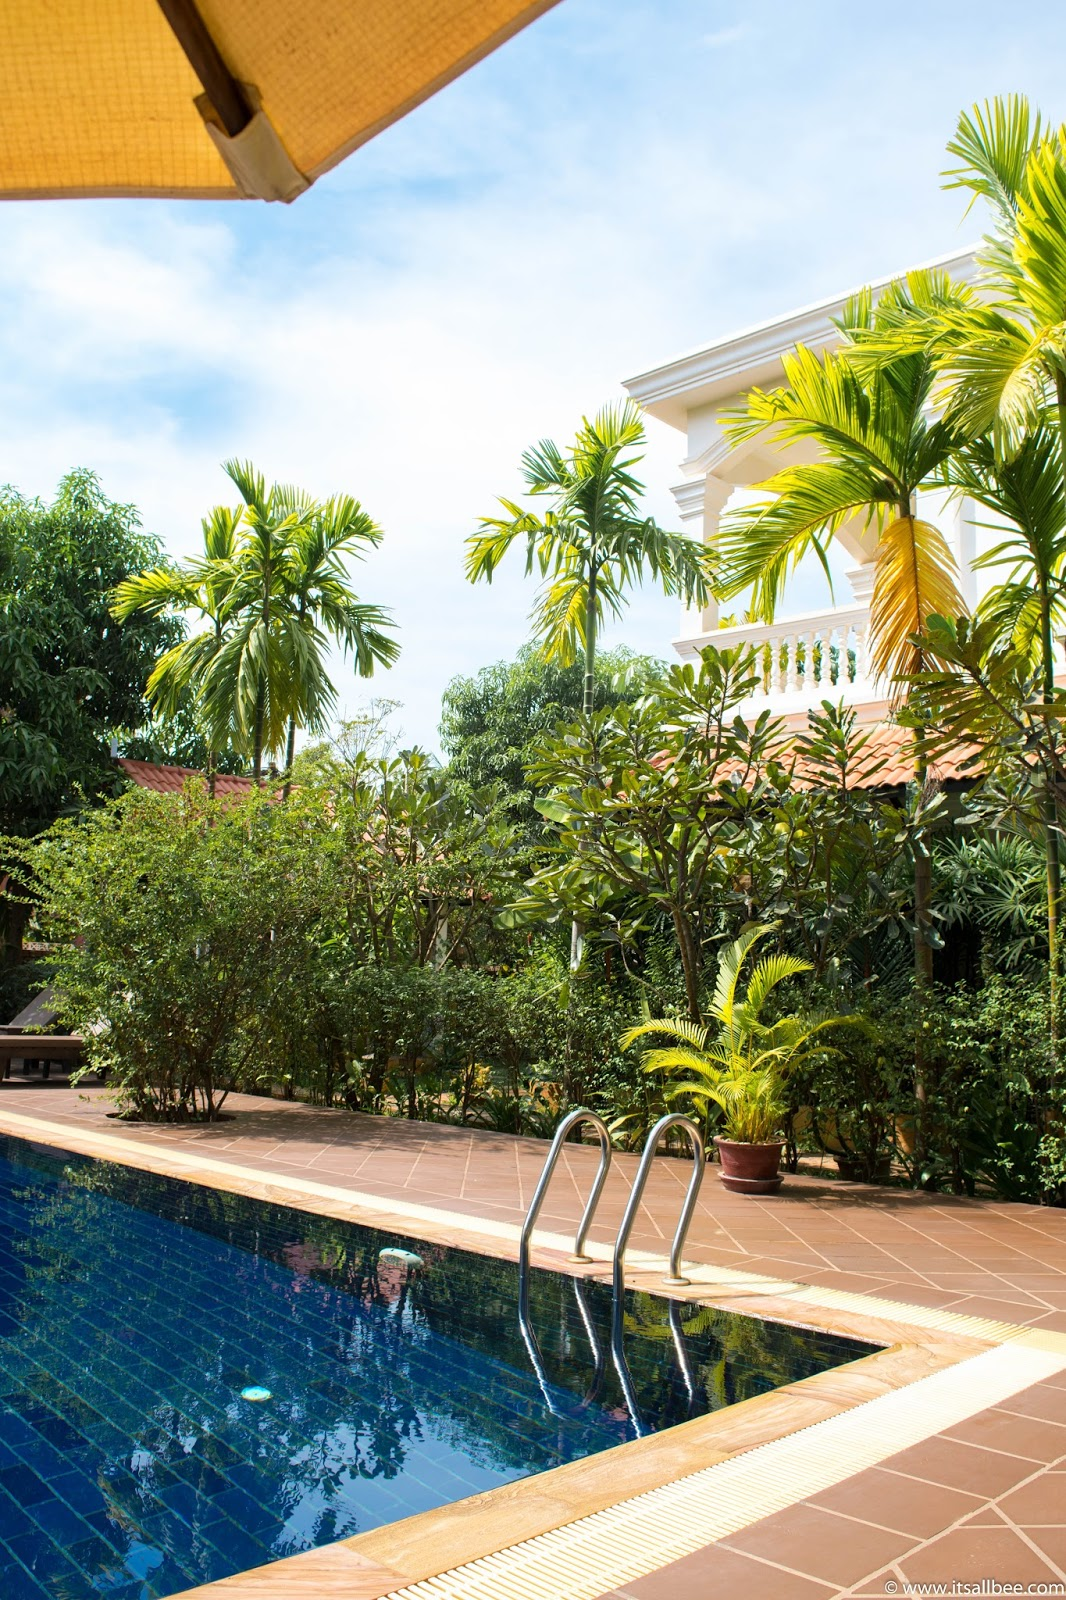 Cambodia | Where To Stay In Siem Reap In Pools